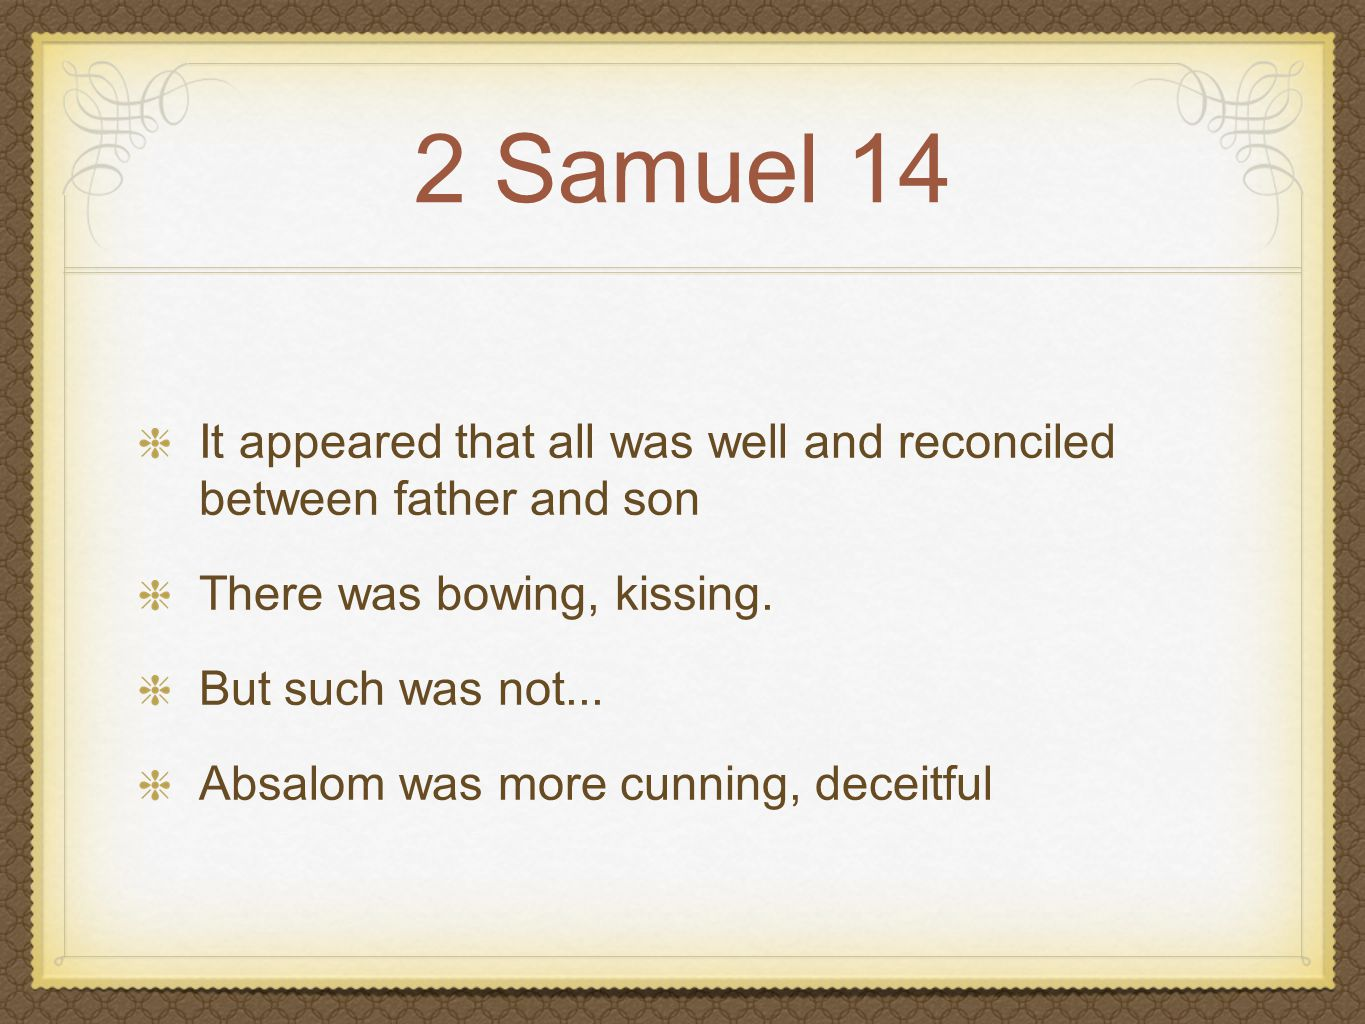 2 Samuel 14 It appeared that all was well and reconciled between father and son There was bowing, kissing. But such was not... Absalom was more cunnin